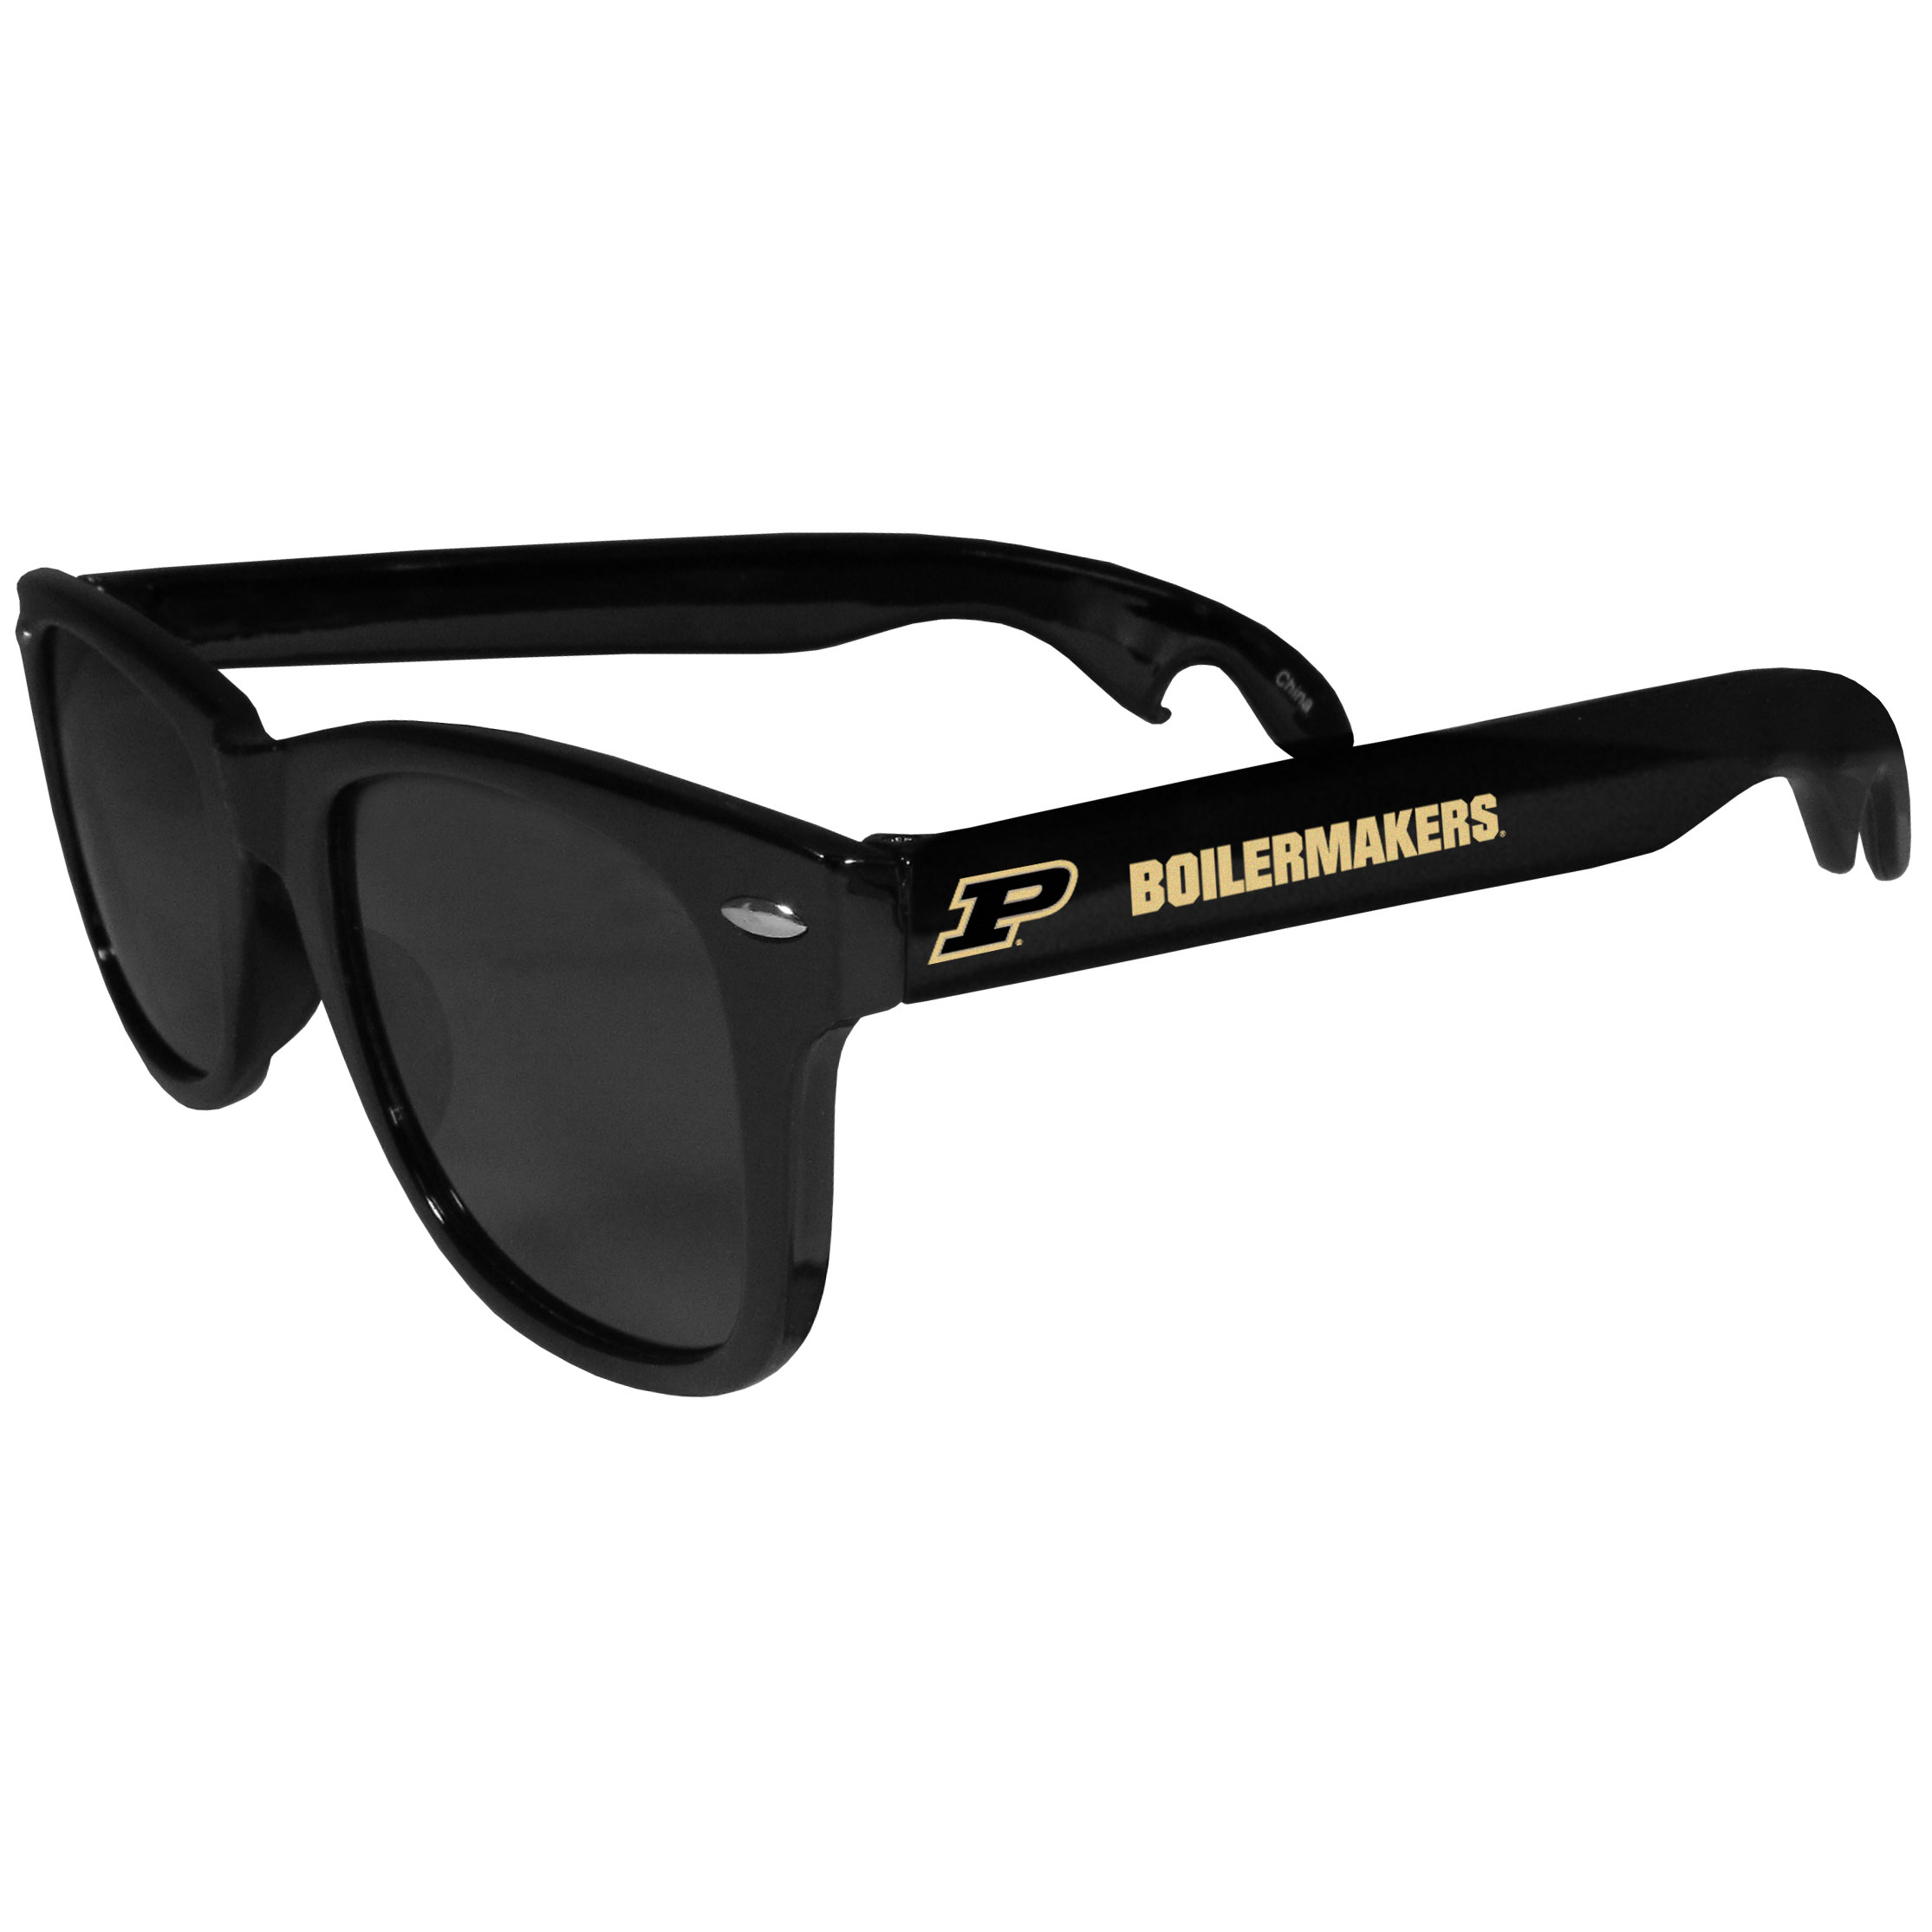 Purdue Boilermakers Beachfarer Bottle Opener Sunglasses - Seriously, these sunglasses open bottles! Keep the party going with these amazing Purdue Boilermakers bottle opener sunglasses. The stylish retro frames feature team designs on the arms and functional bottle openers on the end of the arms. Whether you are at the beach or having a backyard BBQ on game day, these shades will keep your eyes protected with 100% UVA/UVB protection and keep you hydrated with the handy bottle opener arms.